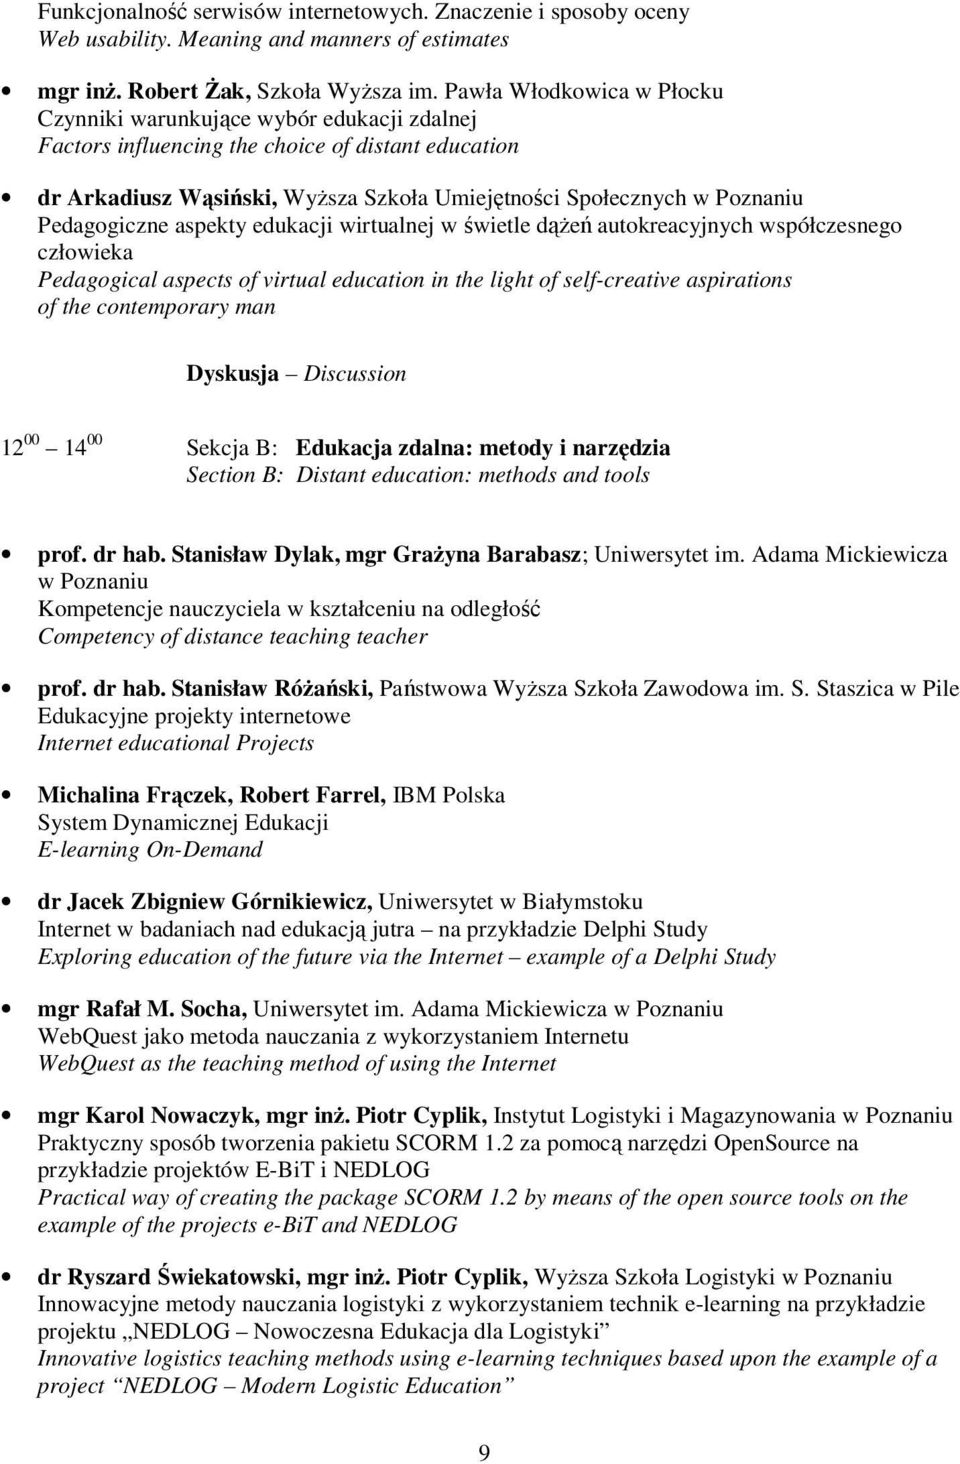 Pedagogiczne aspekty edukacji wirtualnej w świetle dążeń autokreacyjnych współczesnego człowieka Pedagogical aspects of virtual education in the light of self-creative aspirations of the contemporary